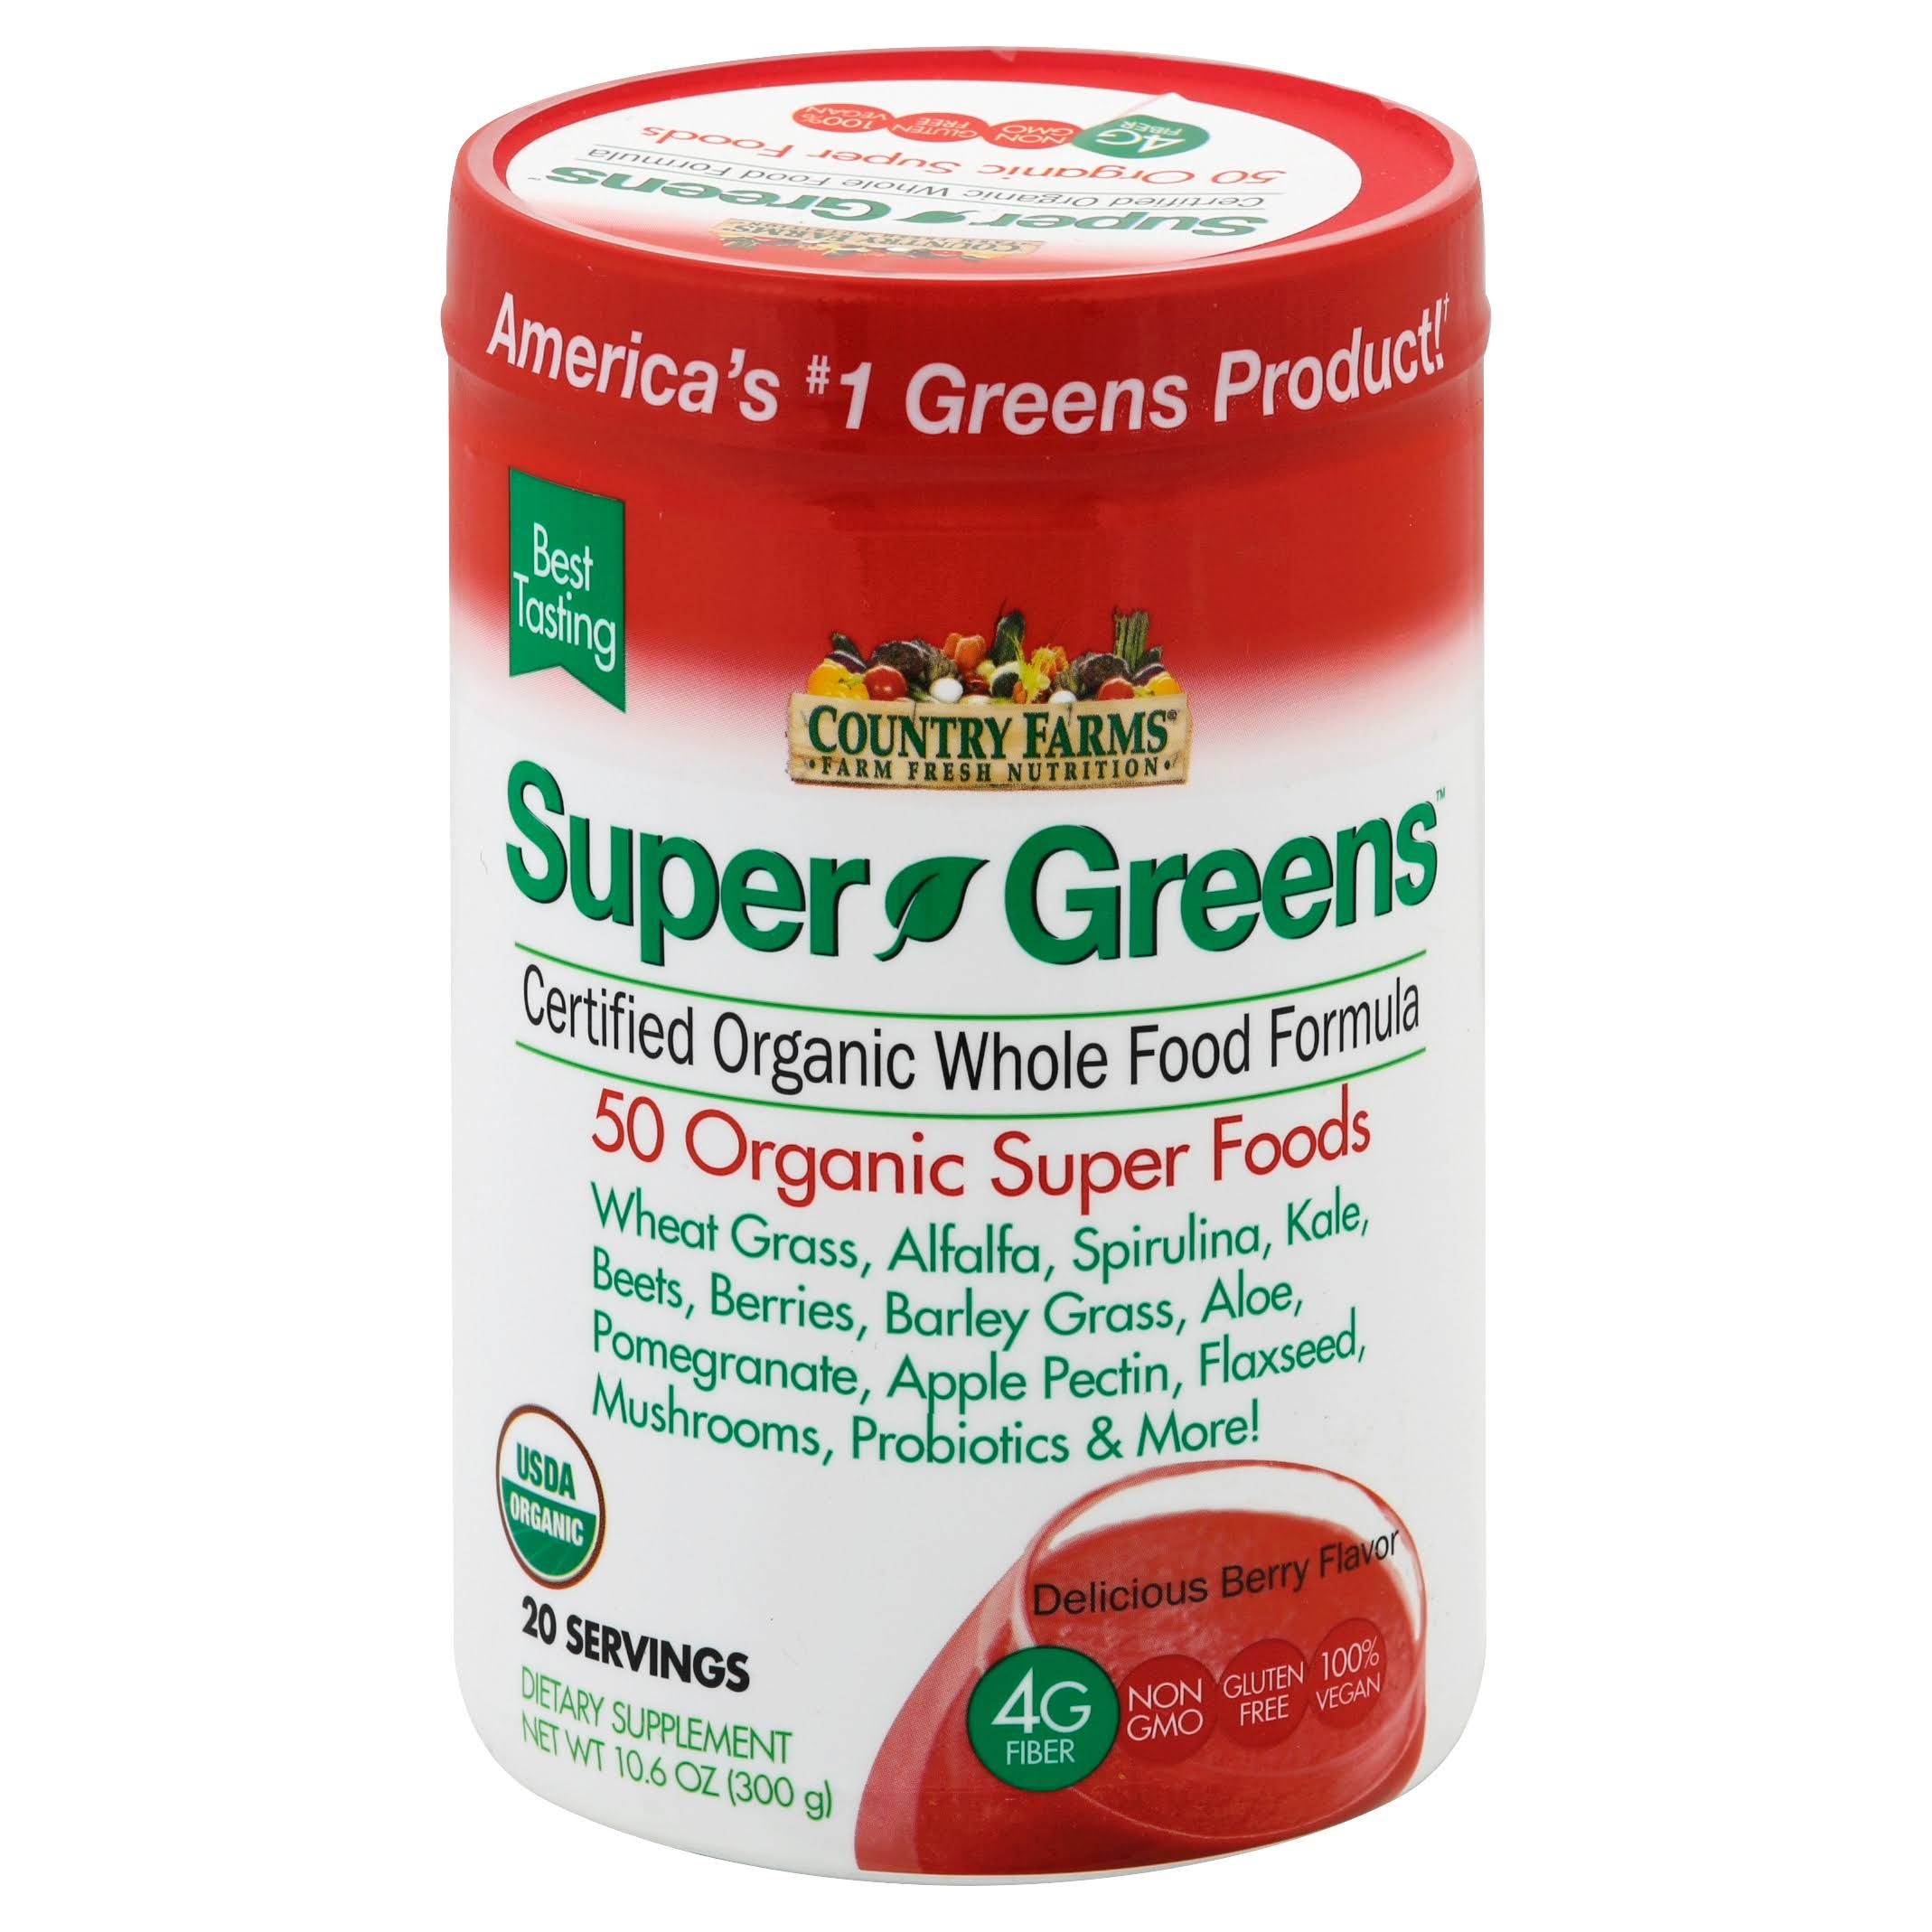 Country Farms Super Green Drink Dietary Supplement - Berry Flavor, 9.88oz